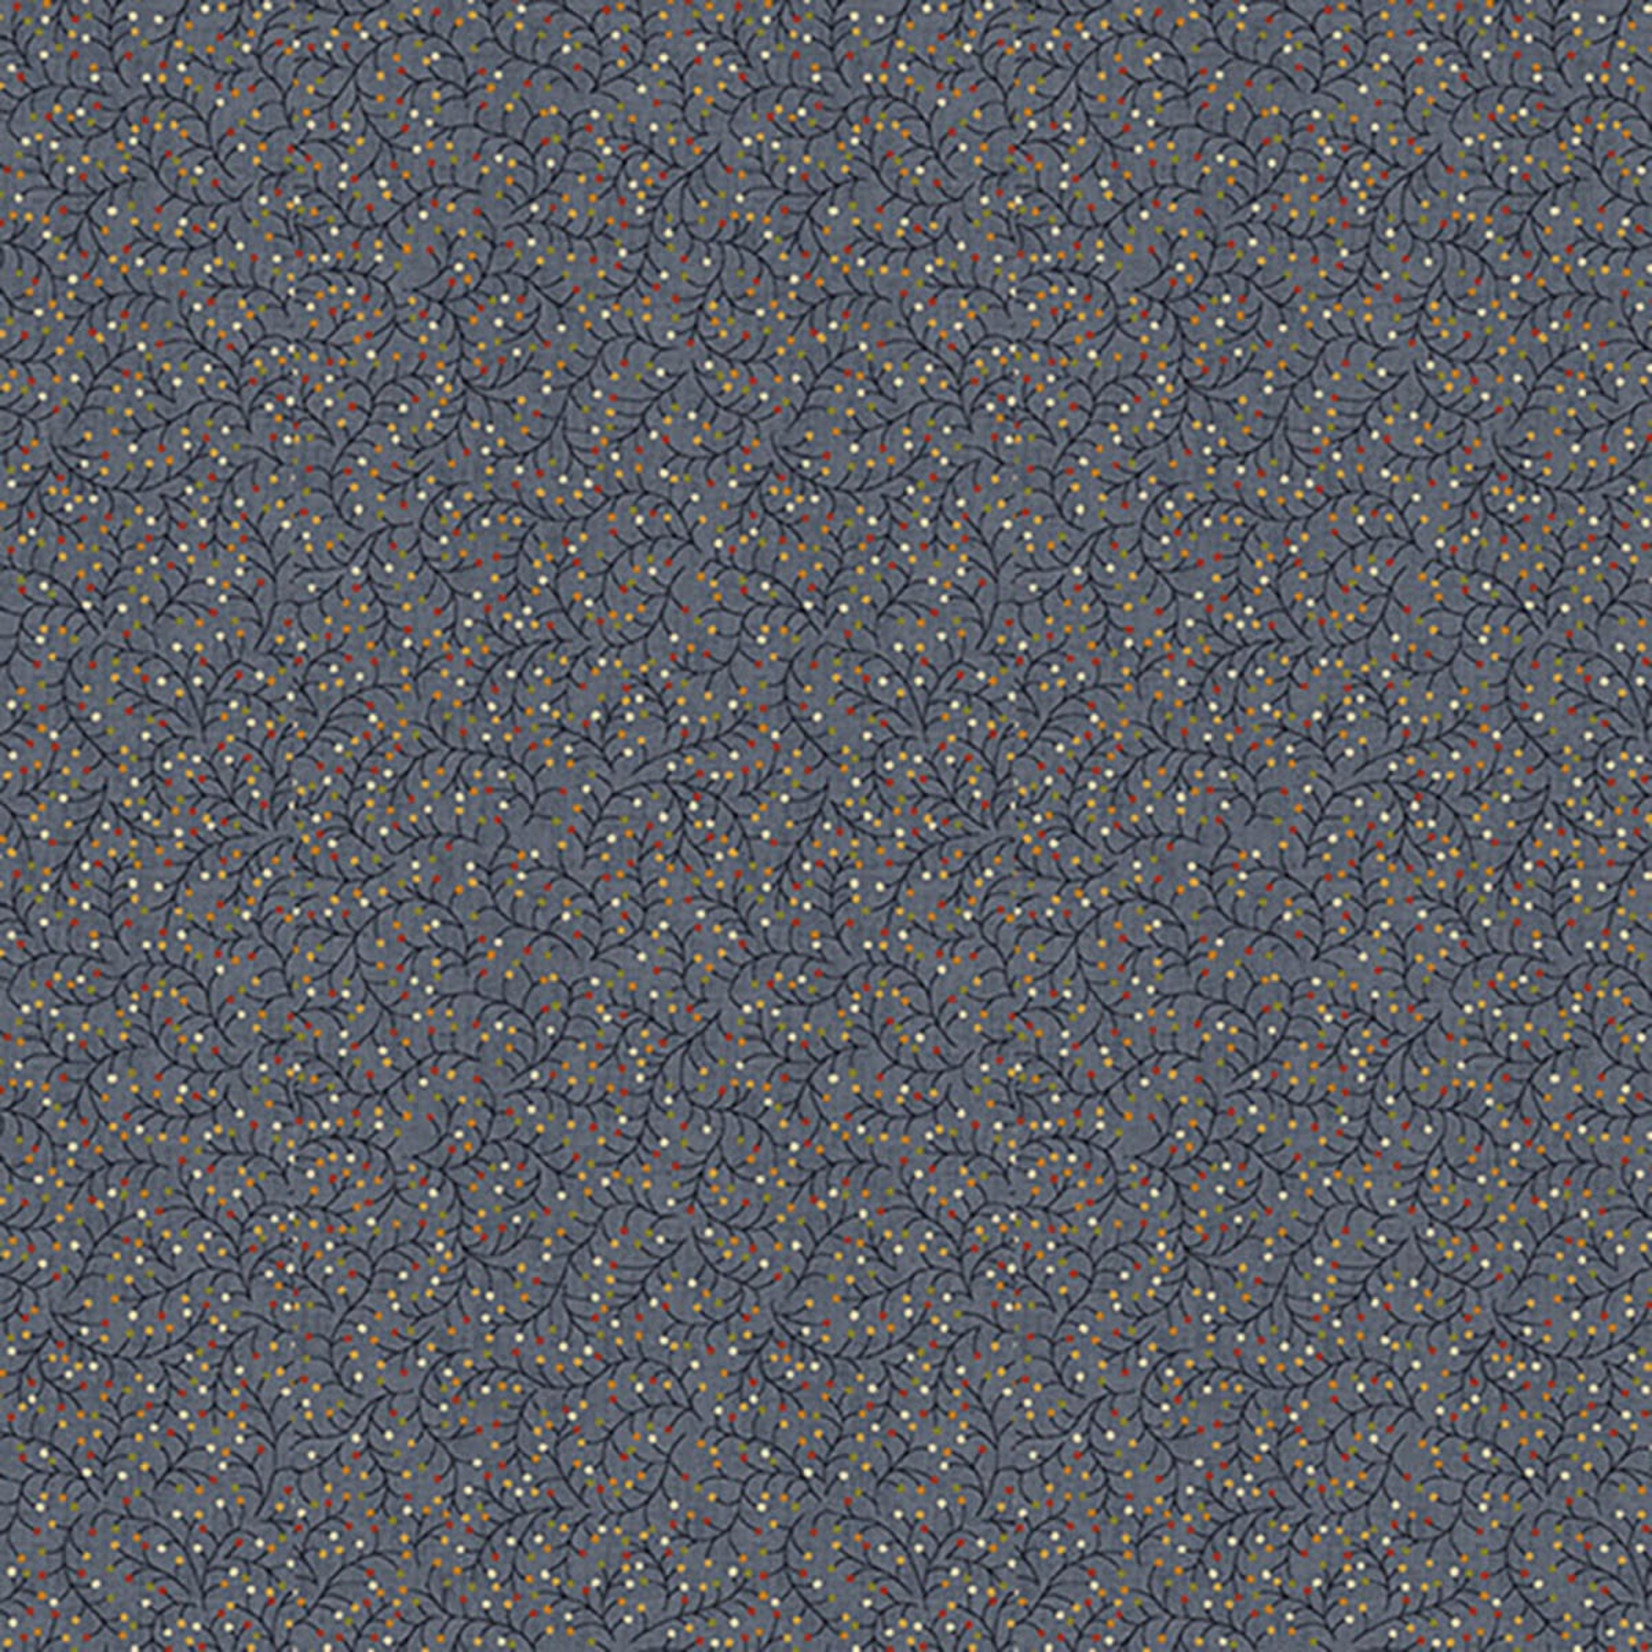 Blank Quilting Barn Dance - Twig With Dots - Blue